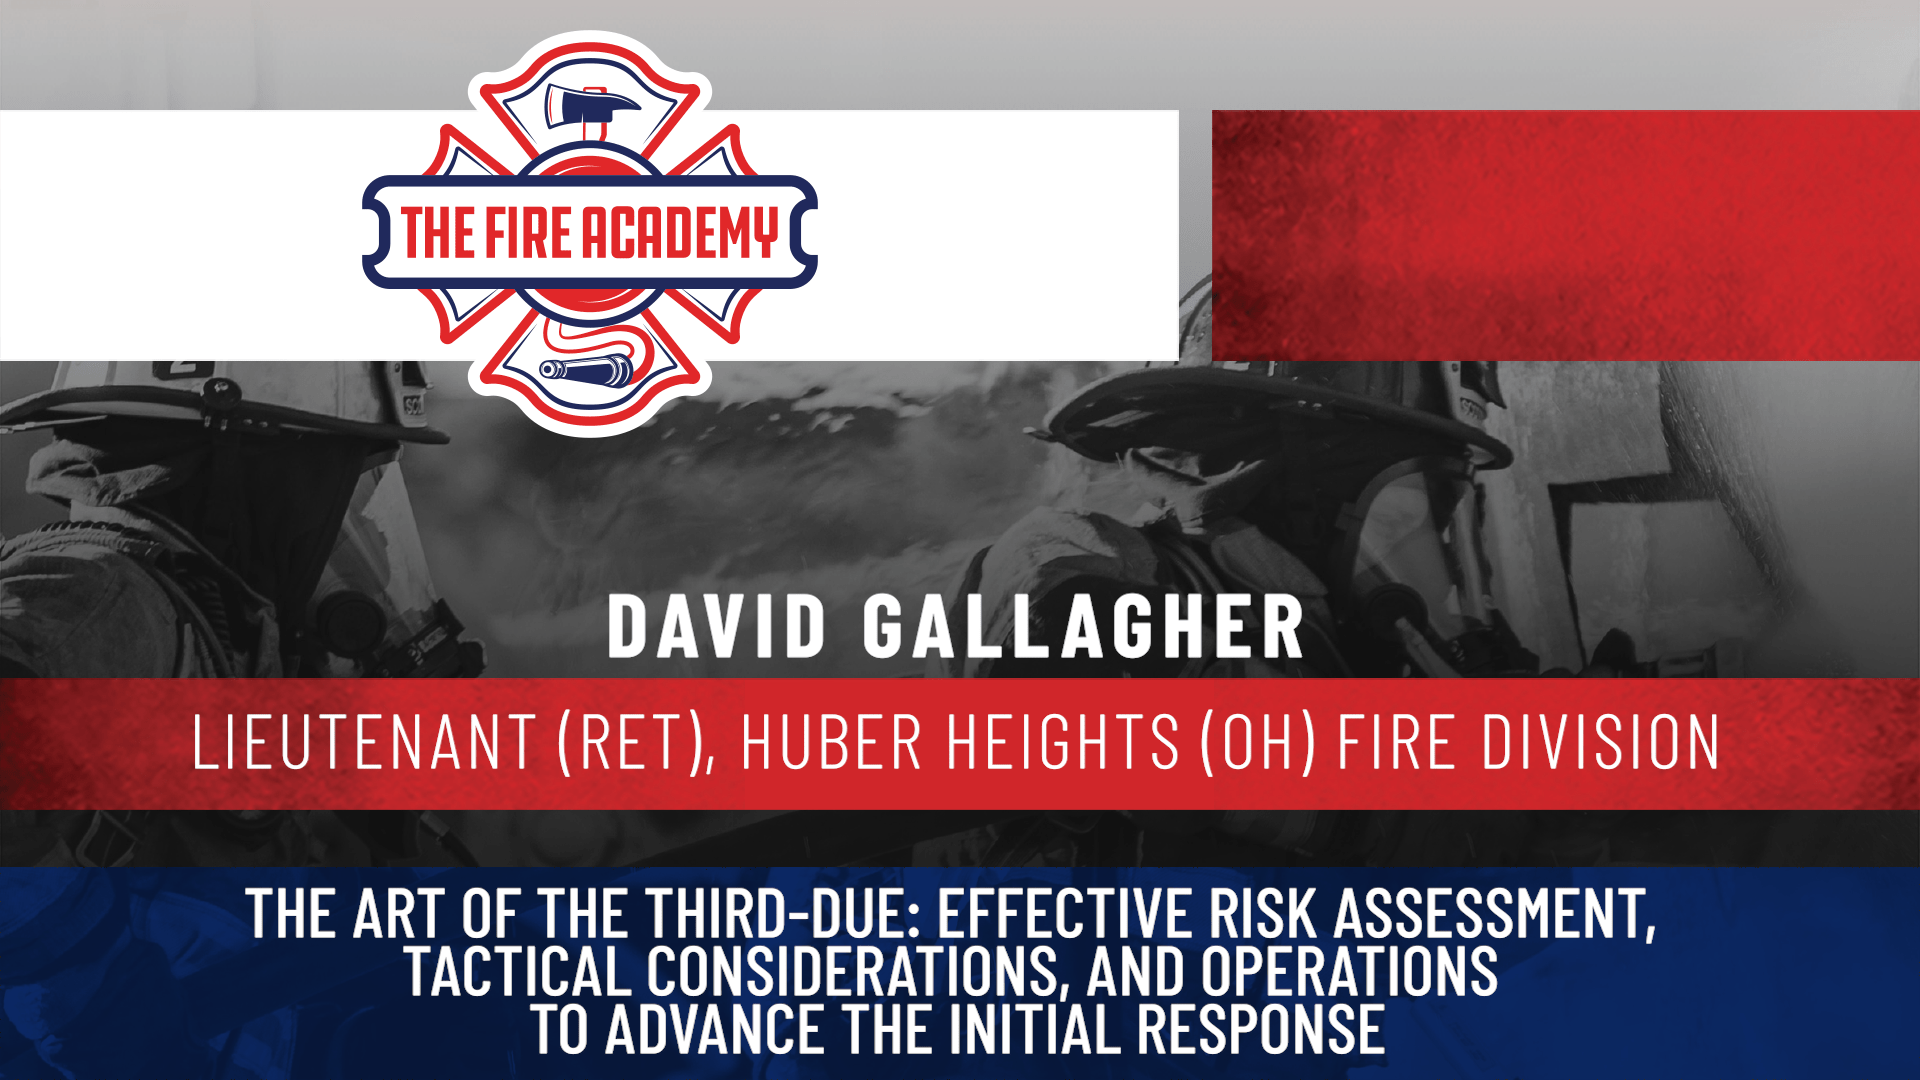 The Art of the Third-Due: Effective Risk Assessment, Tactical Considerations, and Operations to Advance the Initial Response